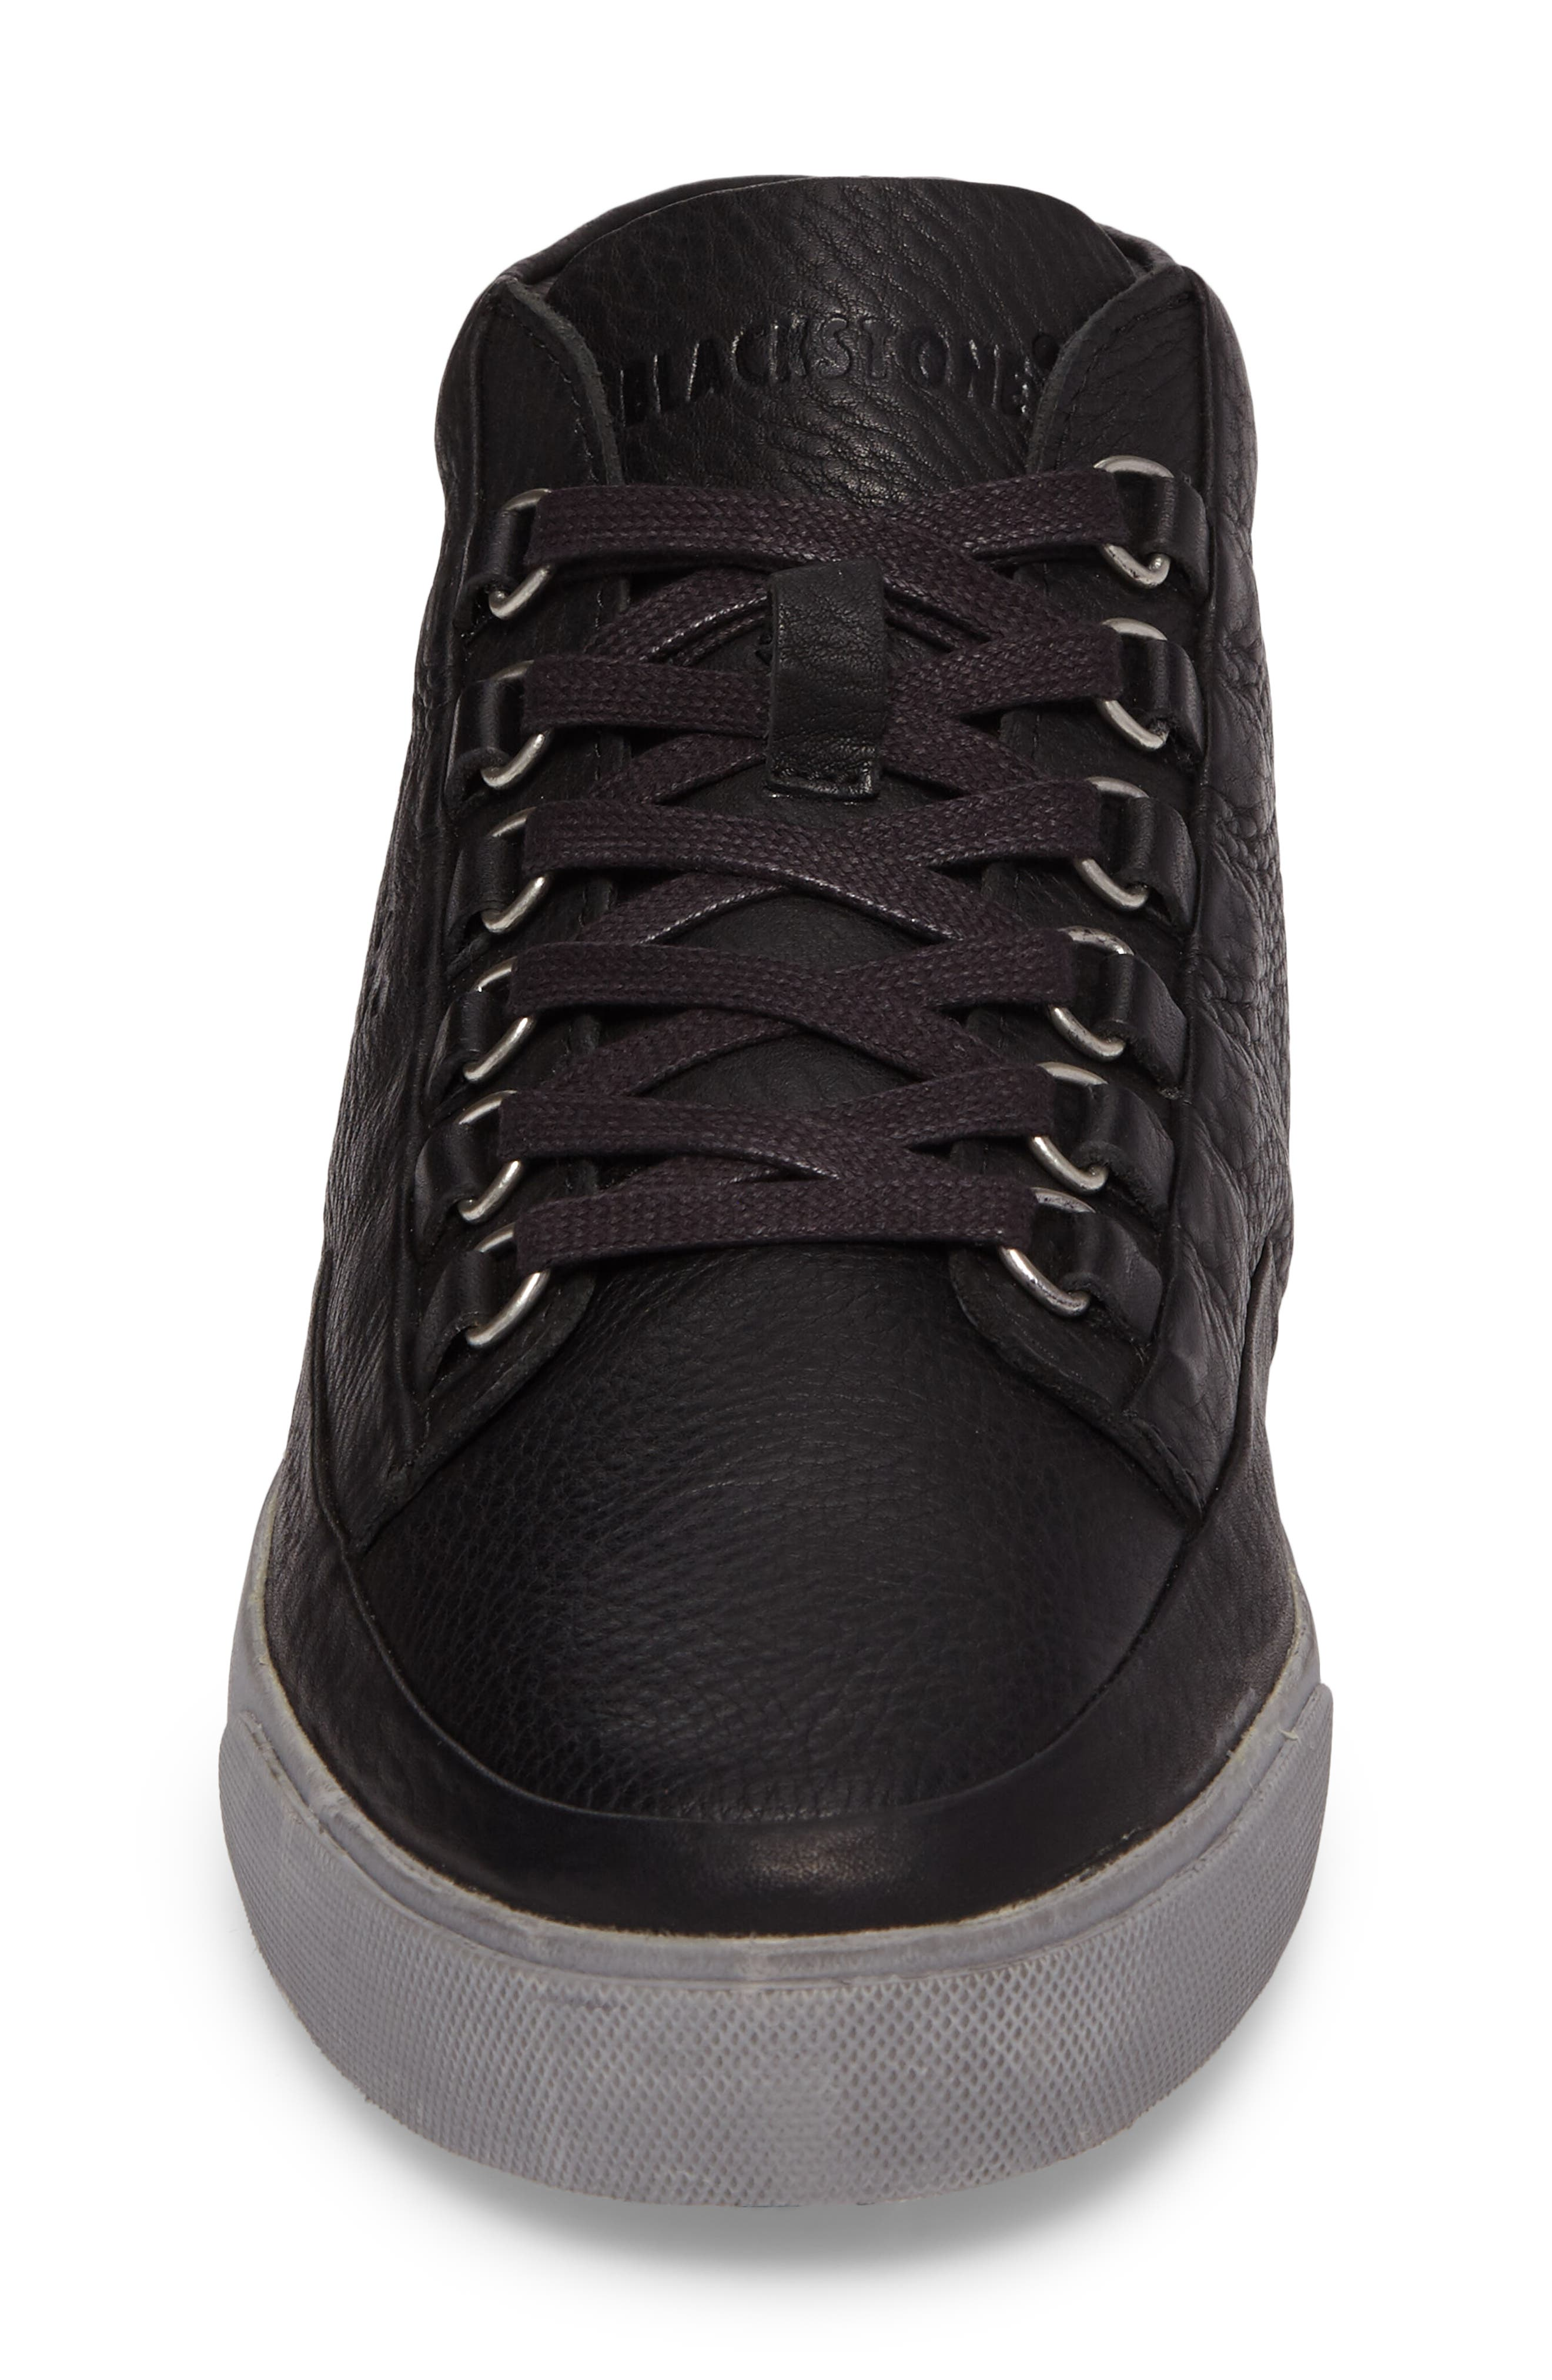 KM 02 Sneaker with Genuine Shearling Lining,                             Alternate thumbnail 4, color,                             001